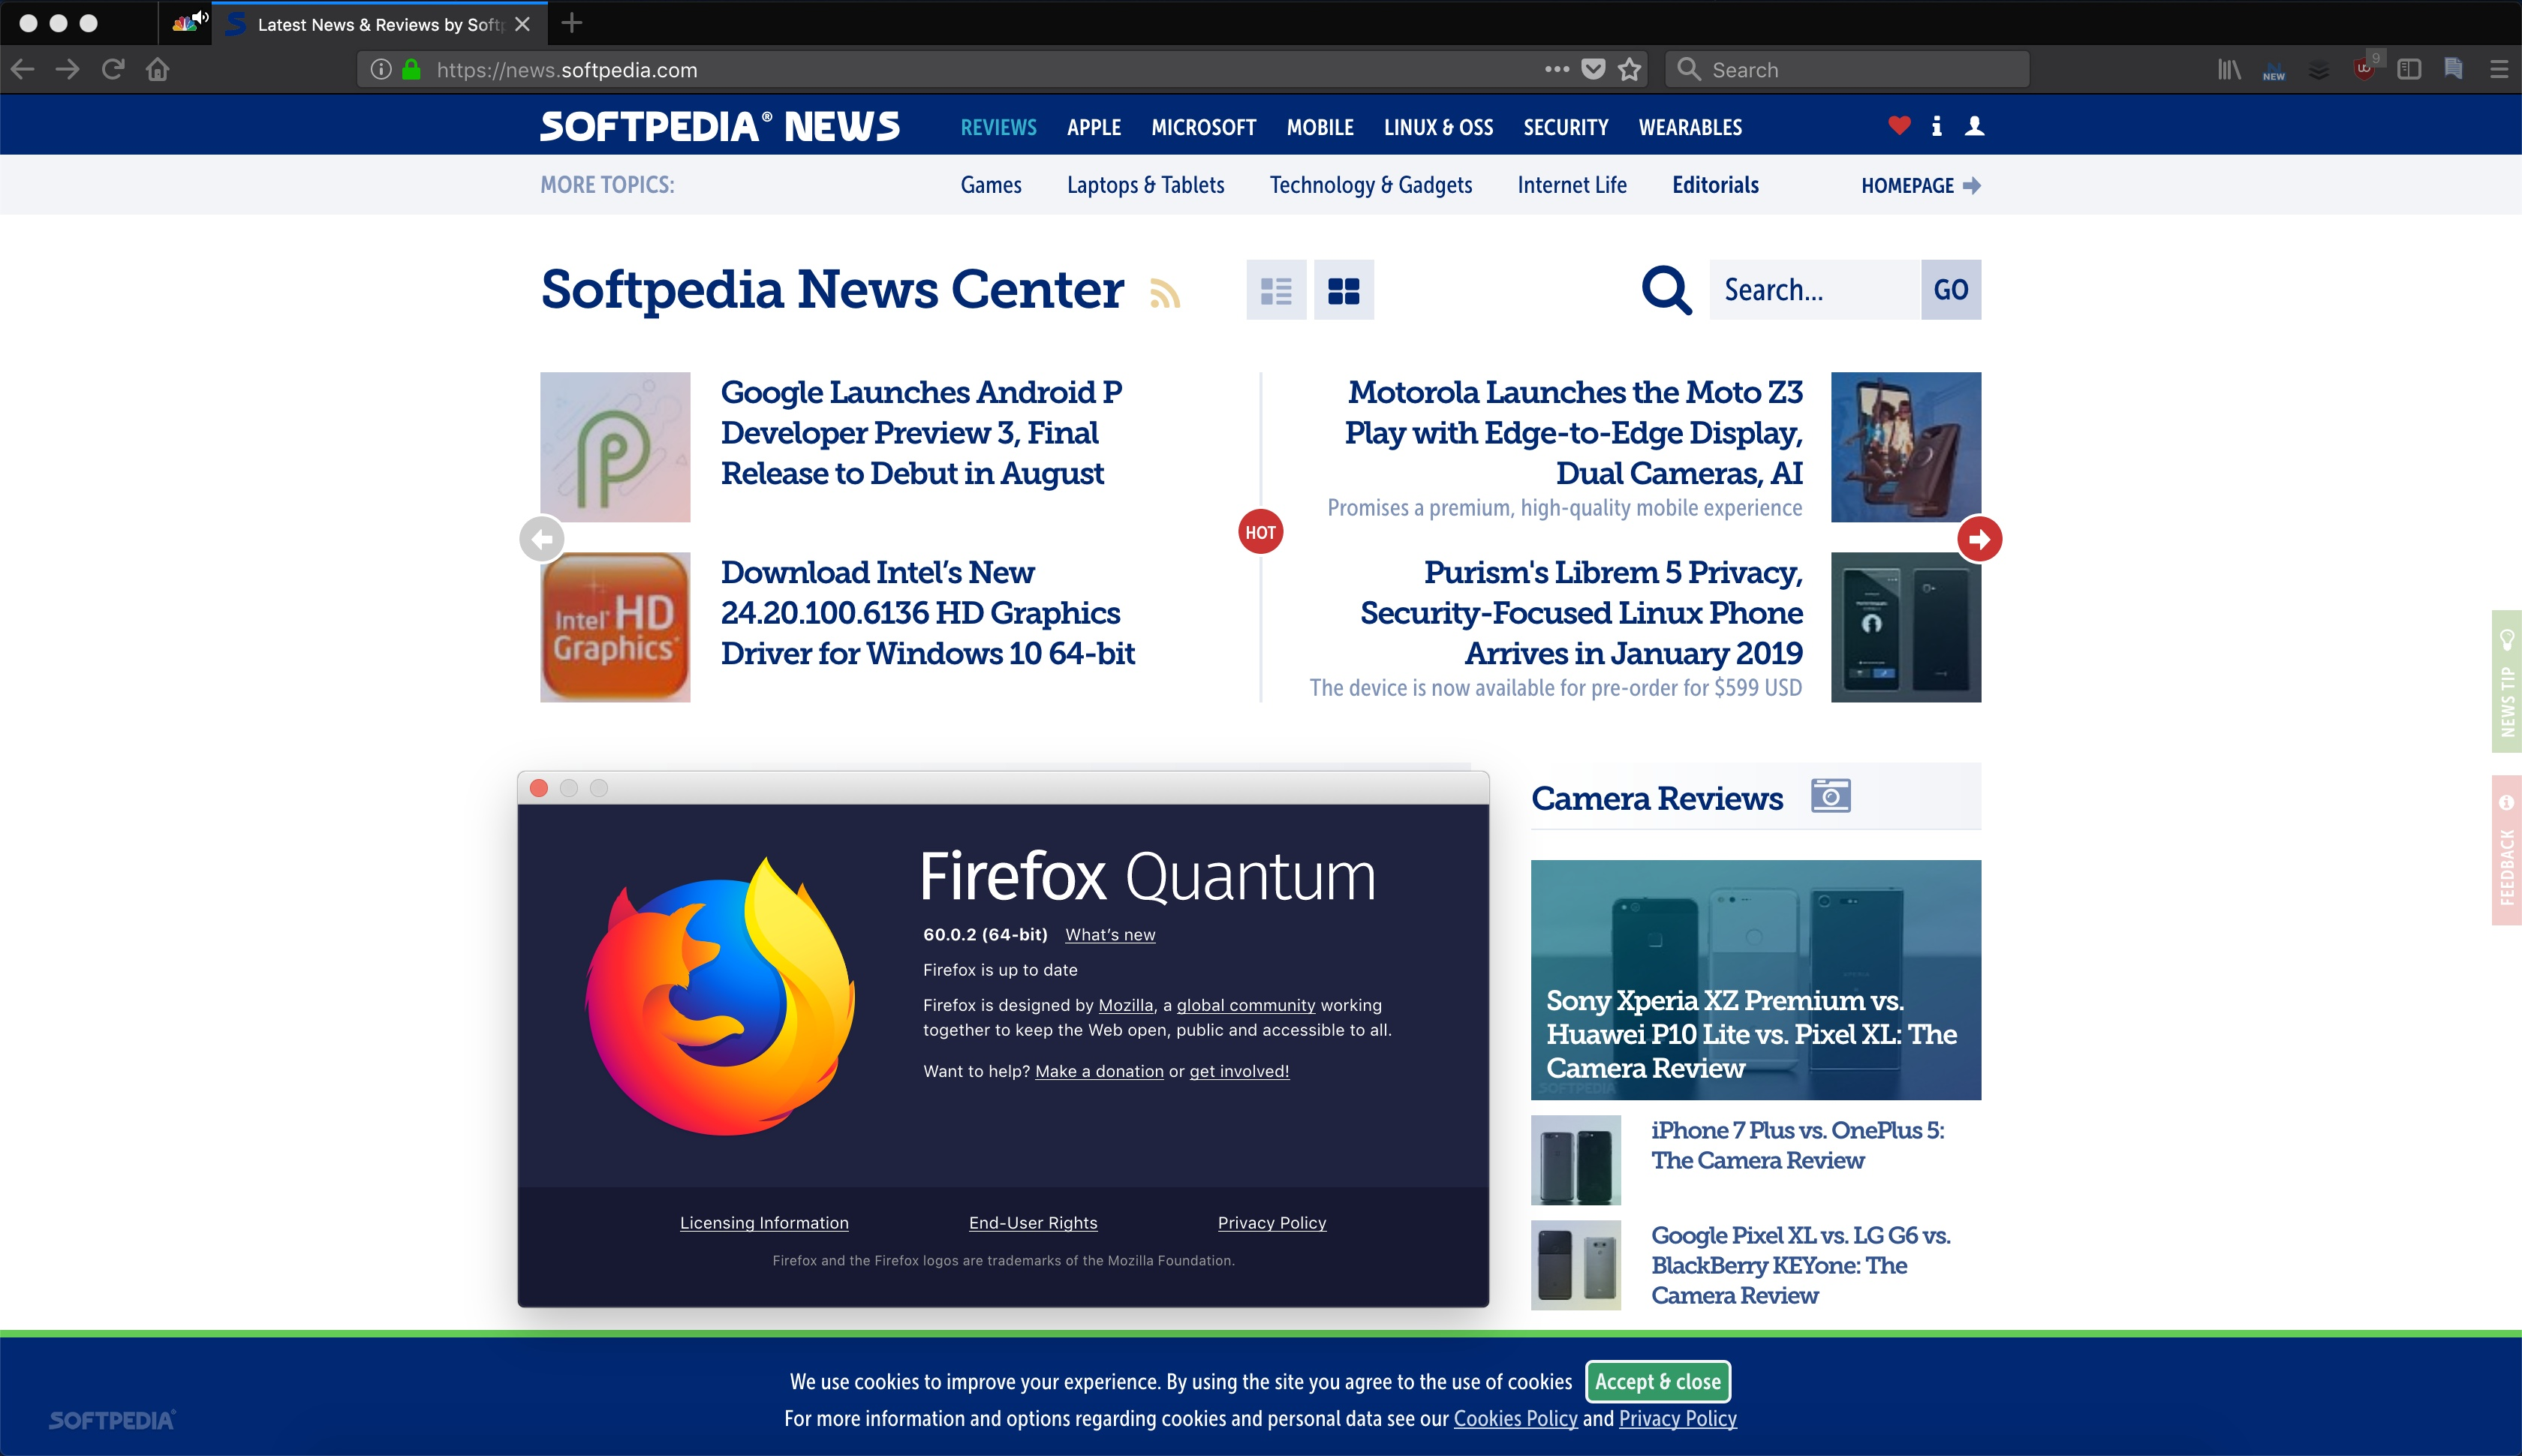 Mozilla Releases Firefox 60 0 2 for Linux, Windows, Mac, and Android